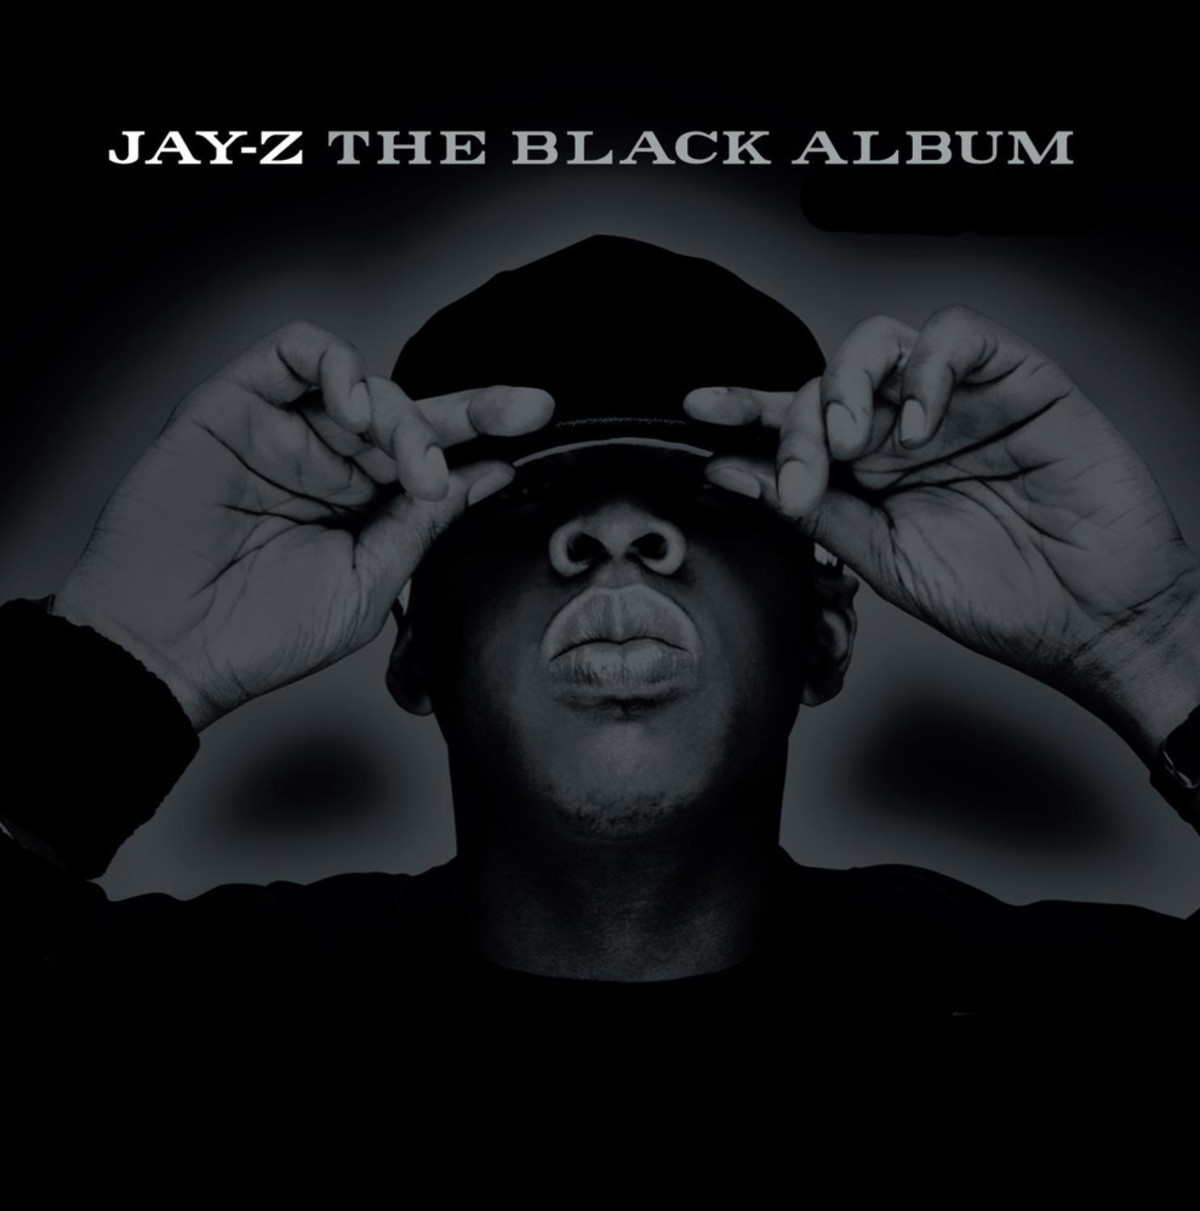 Looking back at jay zs the black album 10 years later